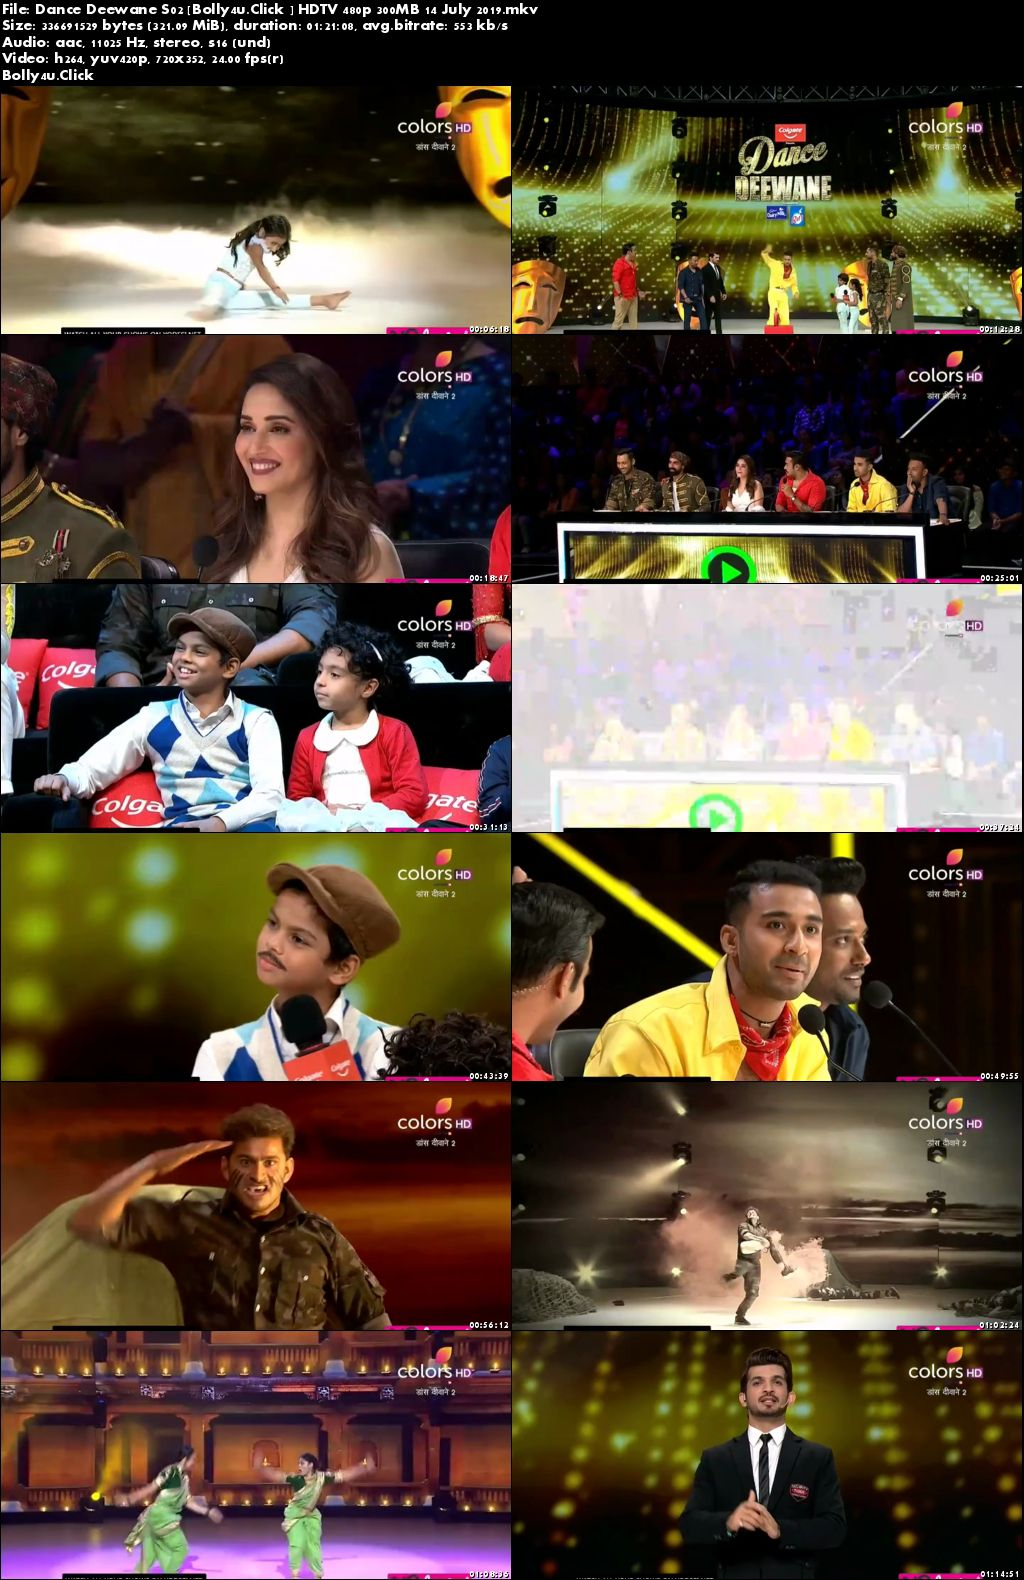 Dance Deewane S02 HDTV 480p 300MB 14 July 2019 Download